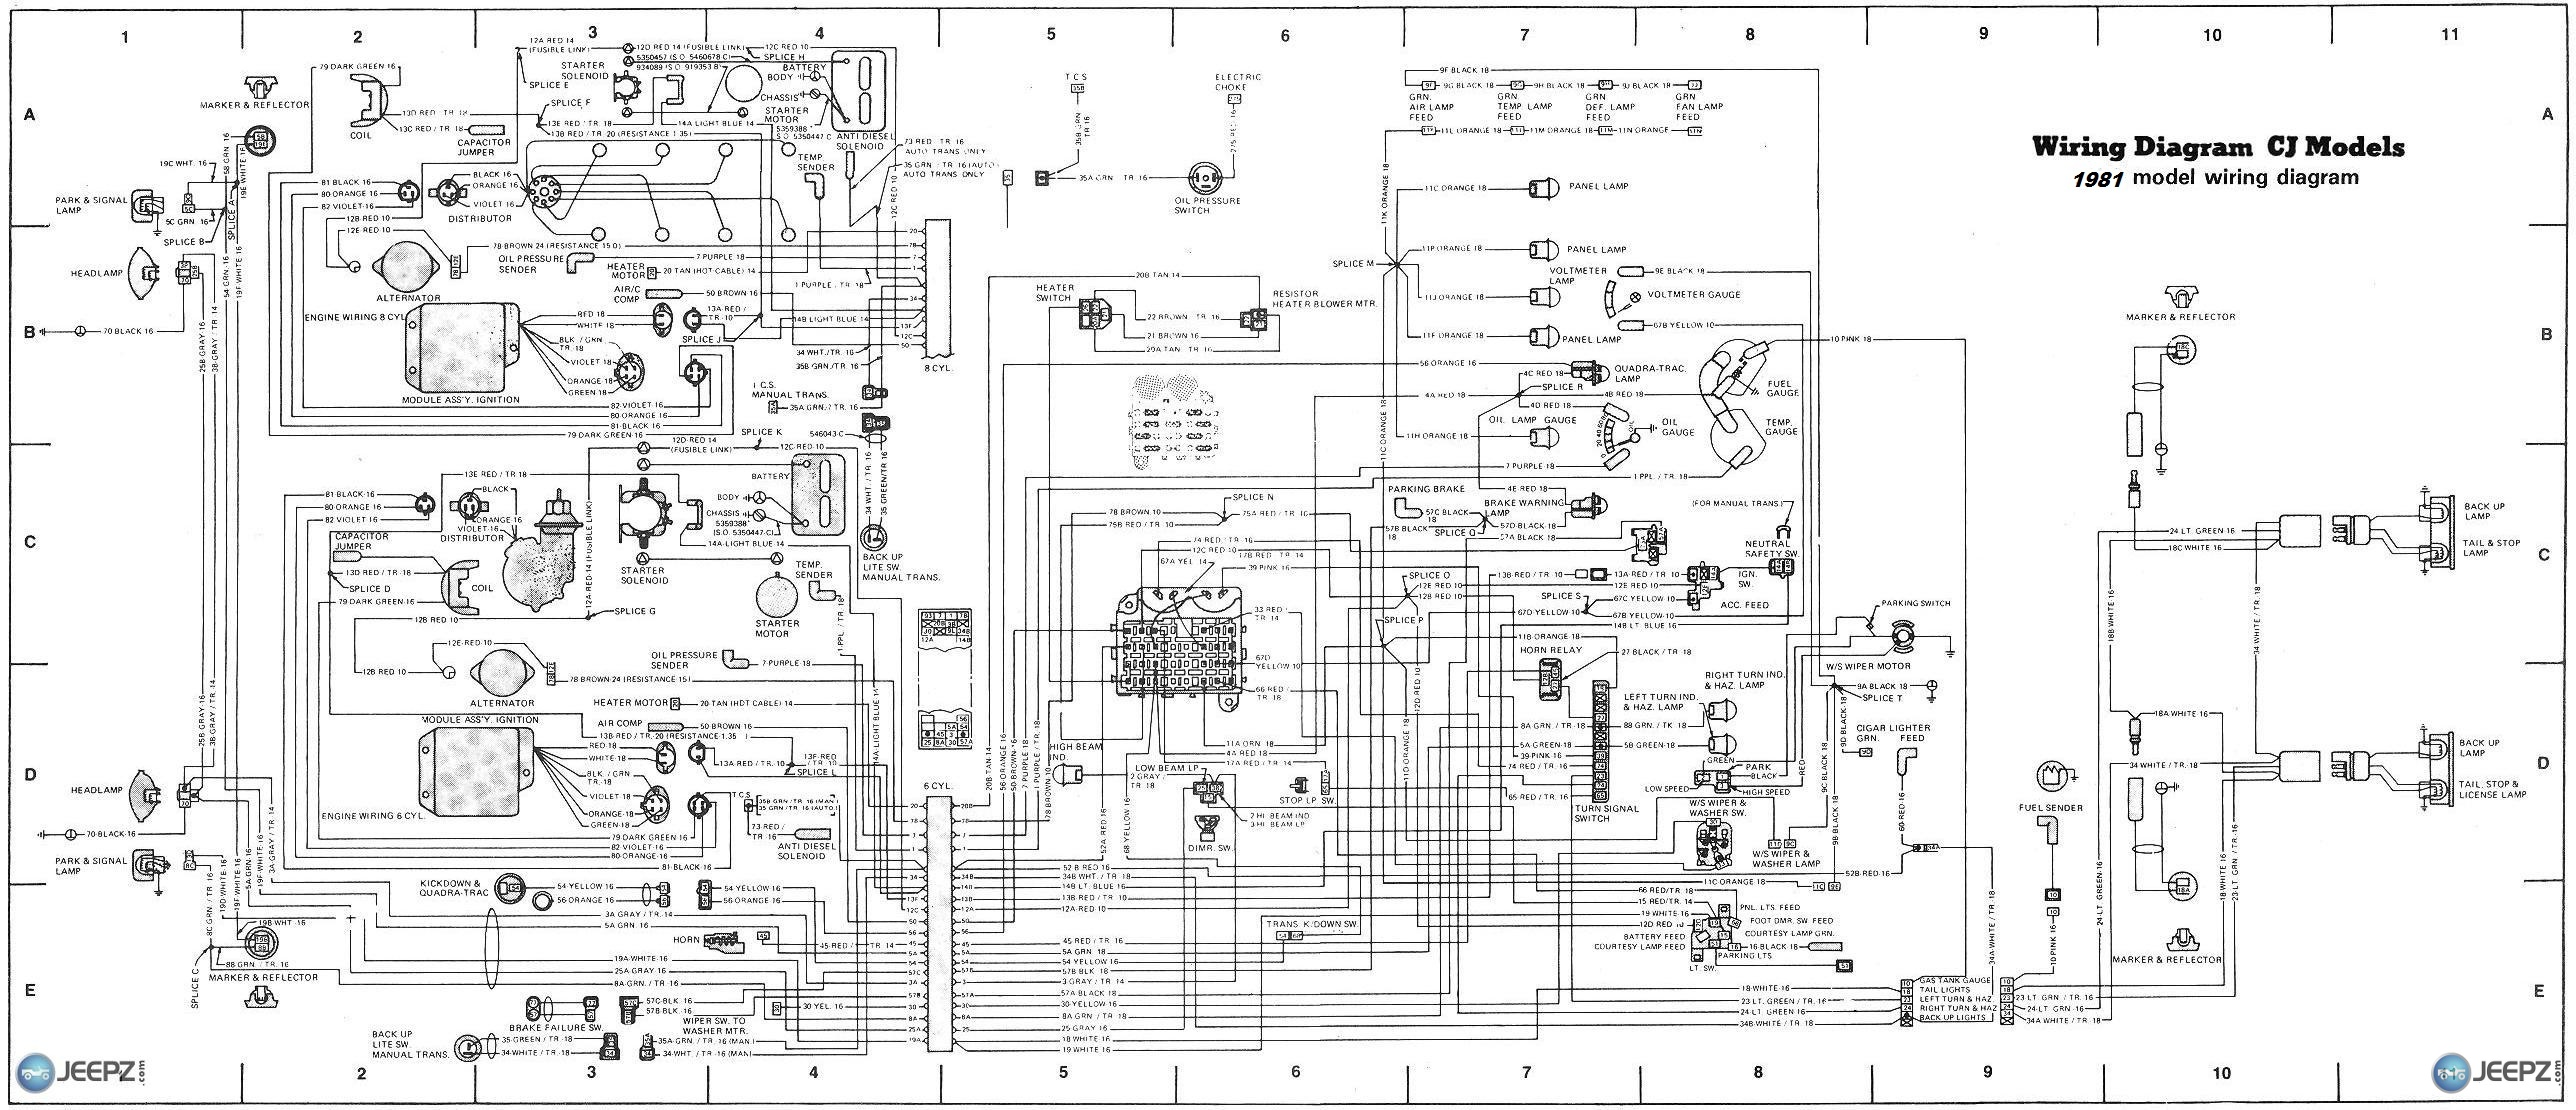 1980 jeep cj7 wiring diagram auto electrical wiring diagram 1988 jeep cj7  wiring-diagram 1980